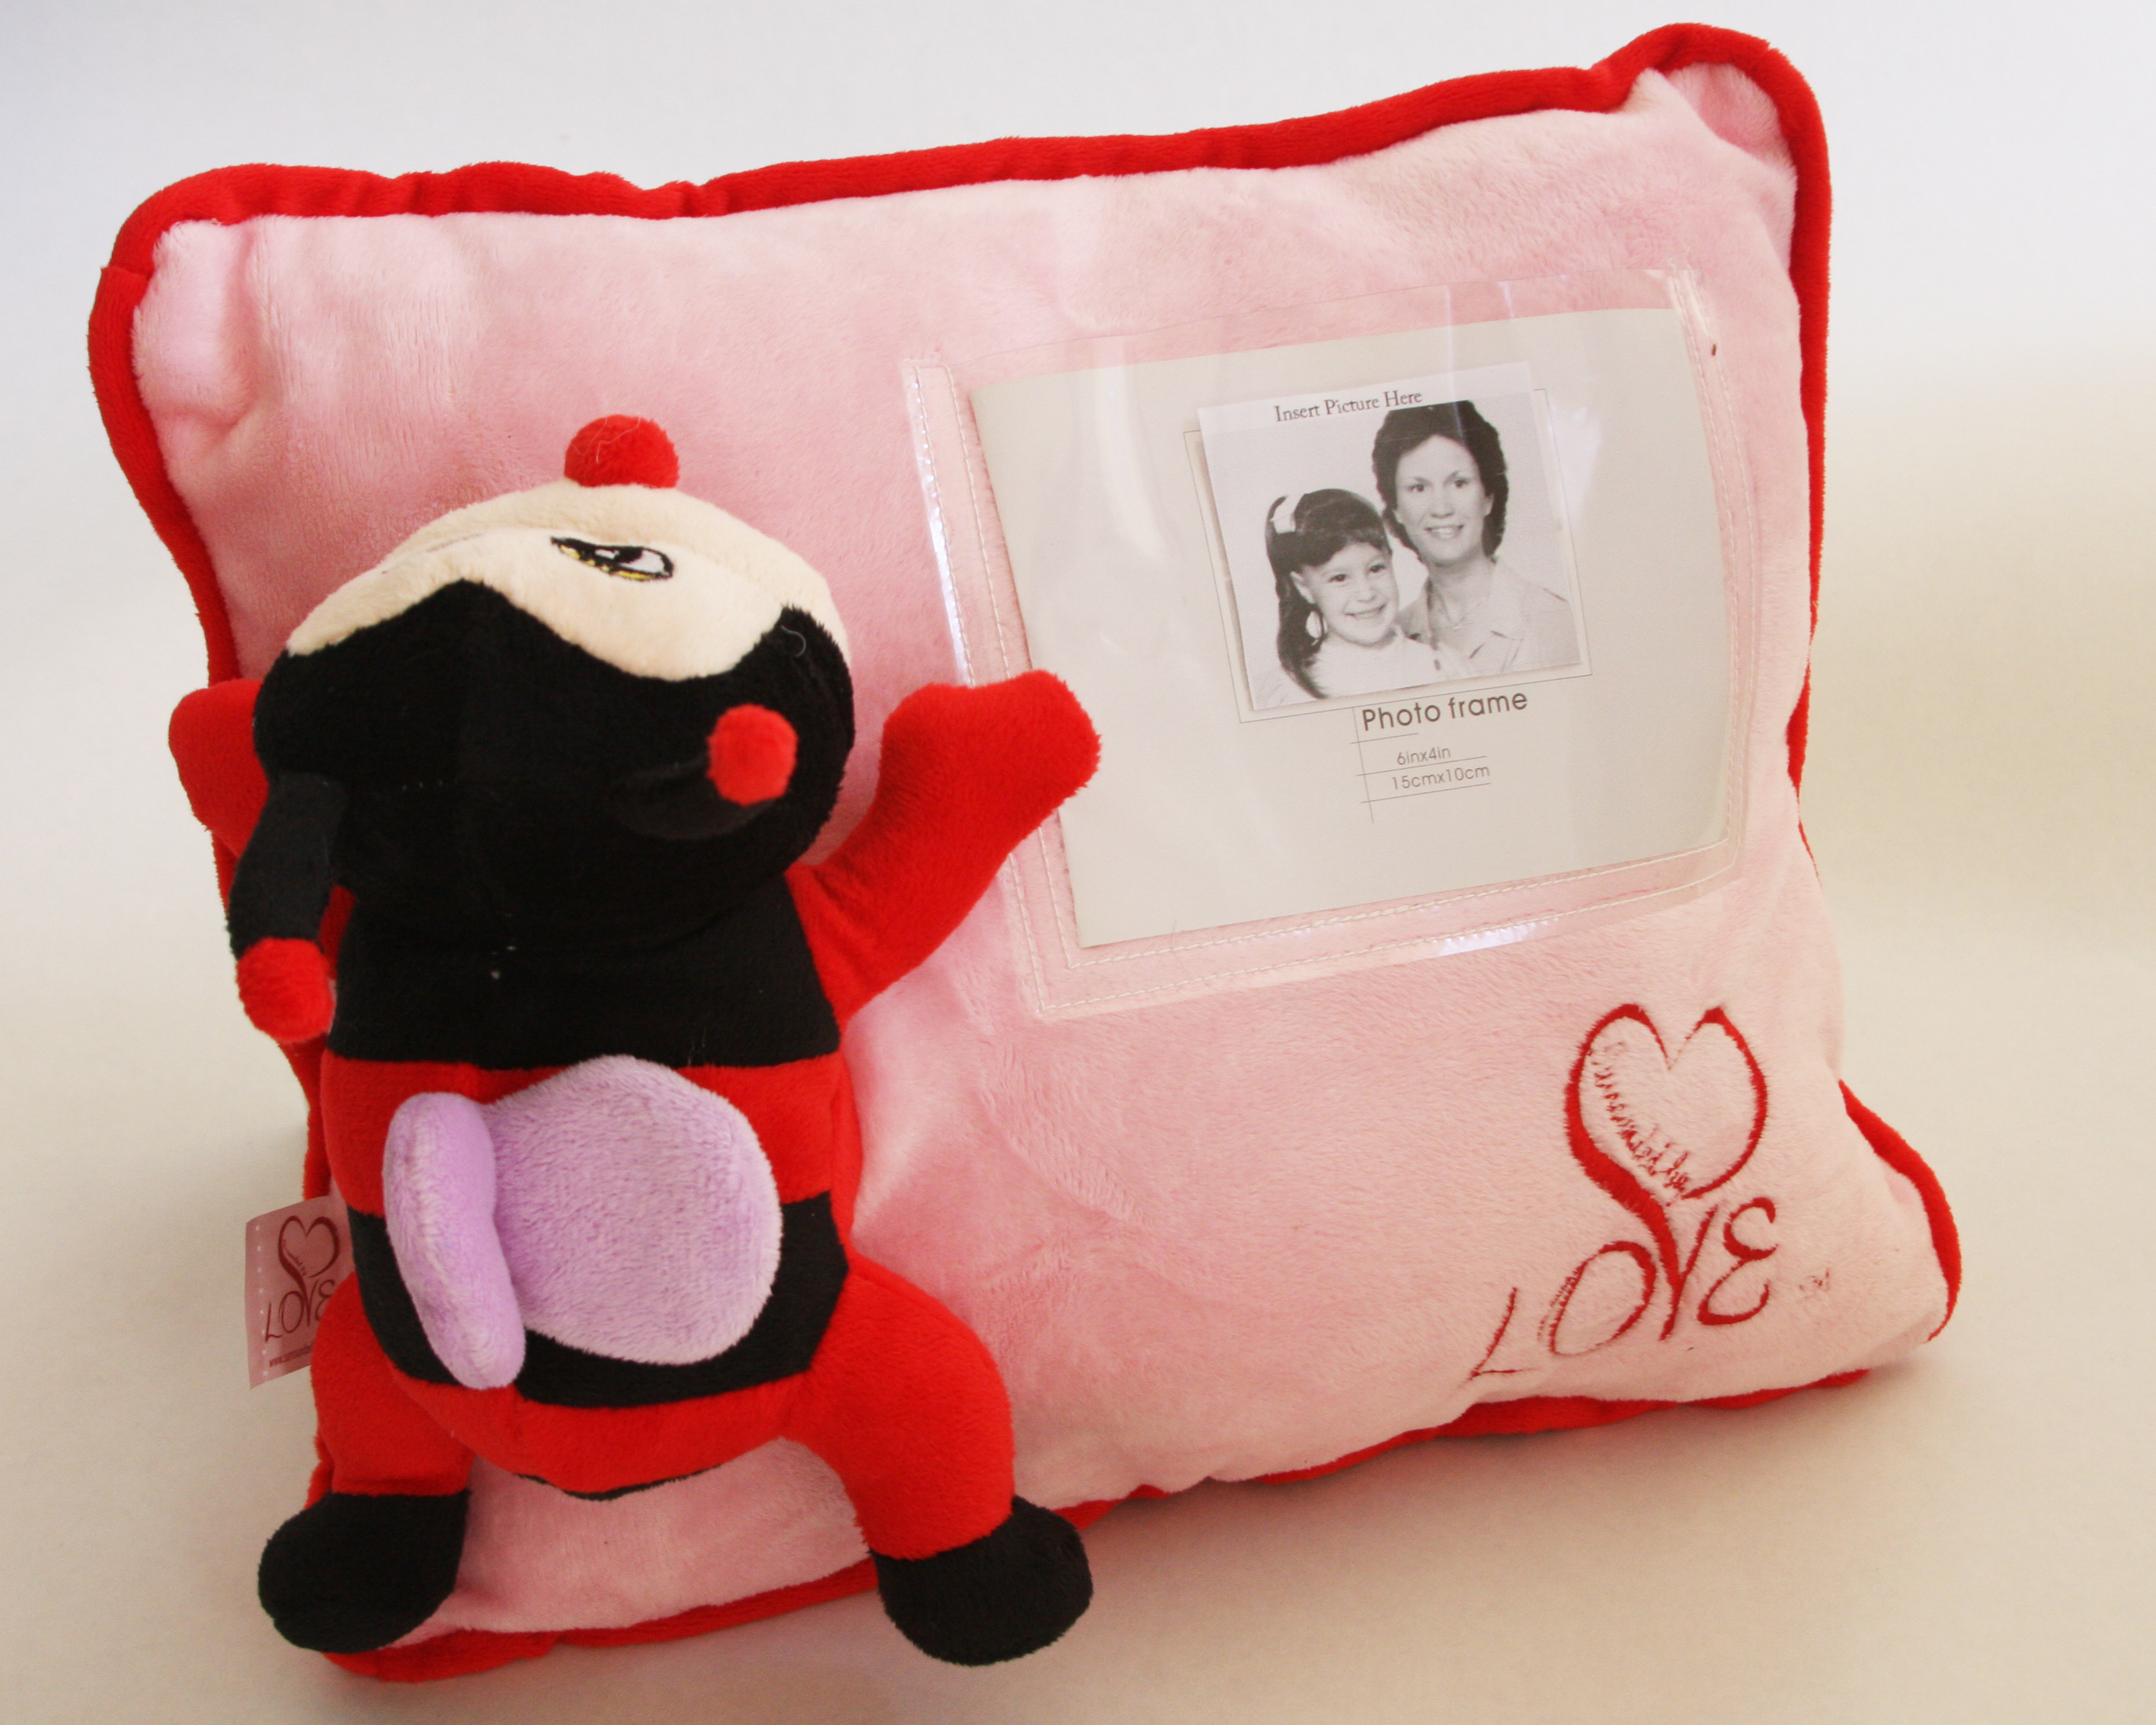 LoveBug personalized pillow Surrounded By Love